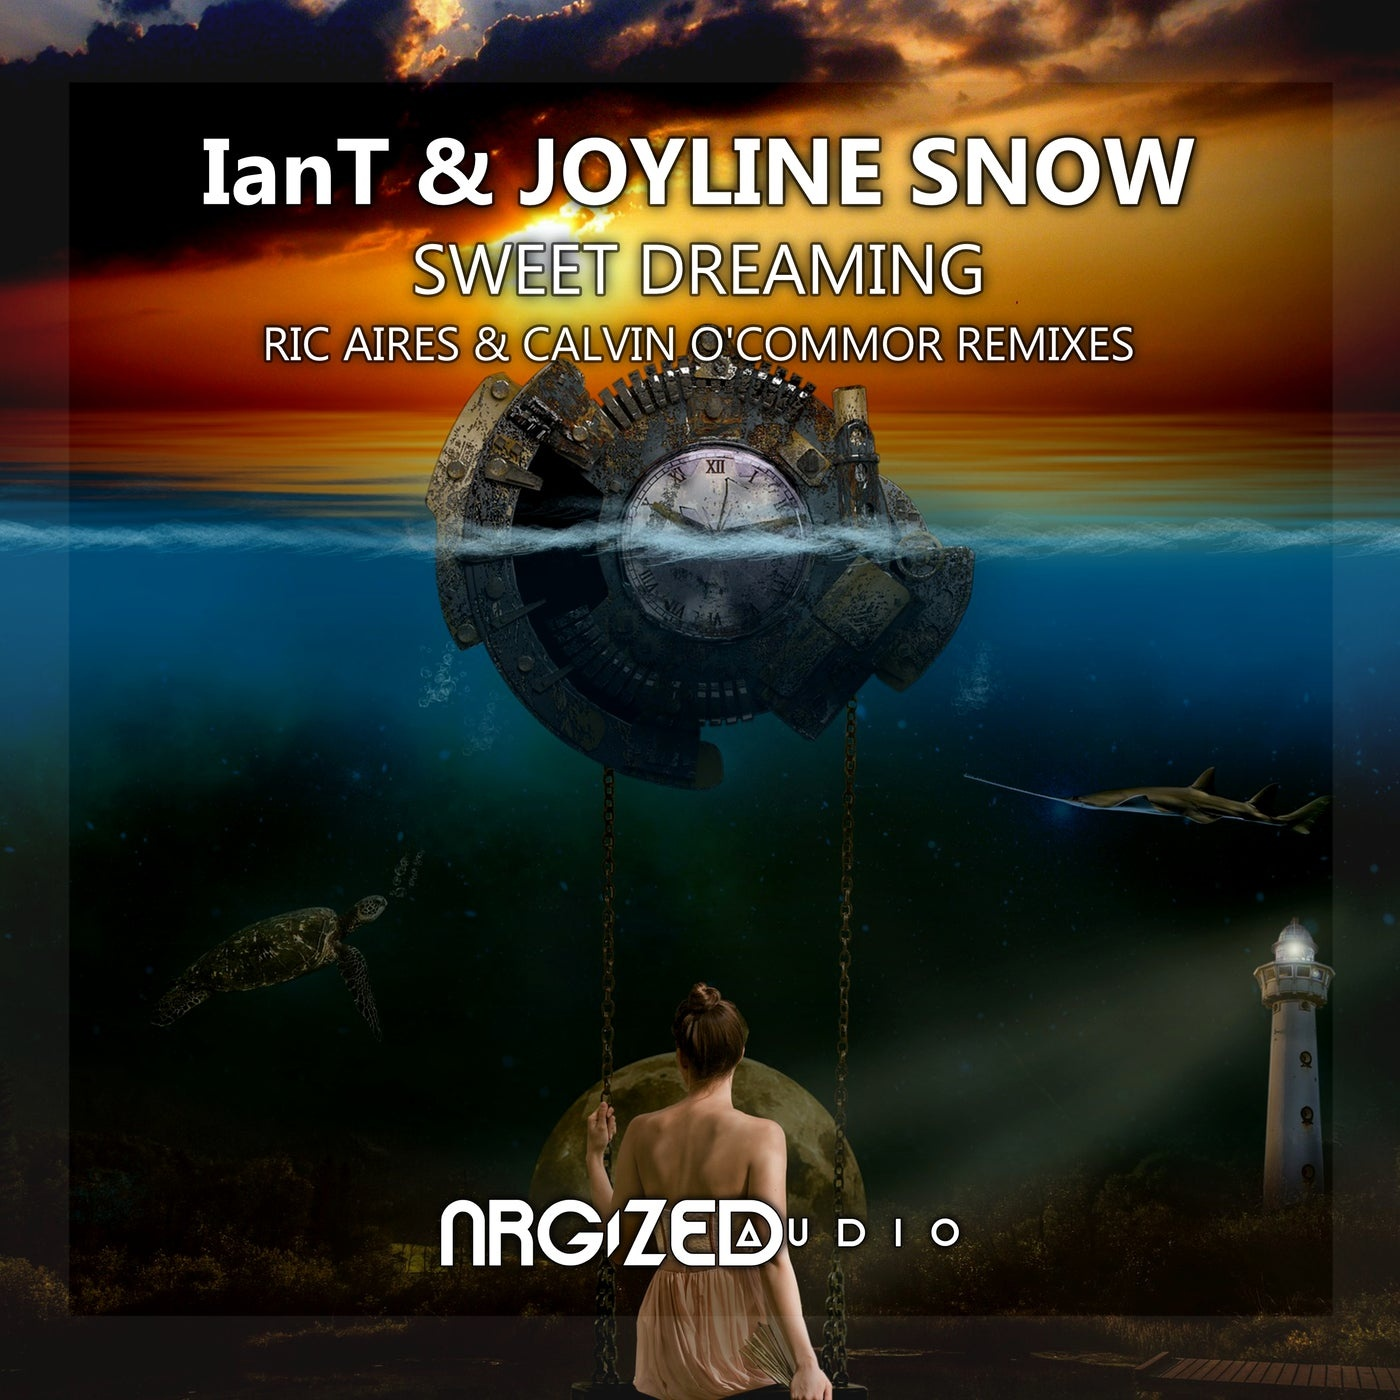 Cover - Iant, Joyline Snow - Sweet Dreaming (Ric Aires Remix)